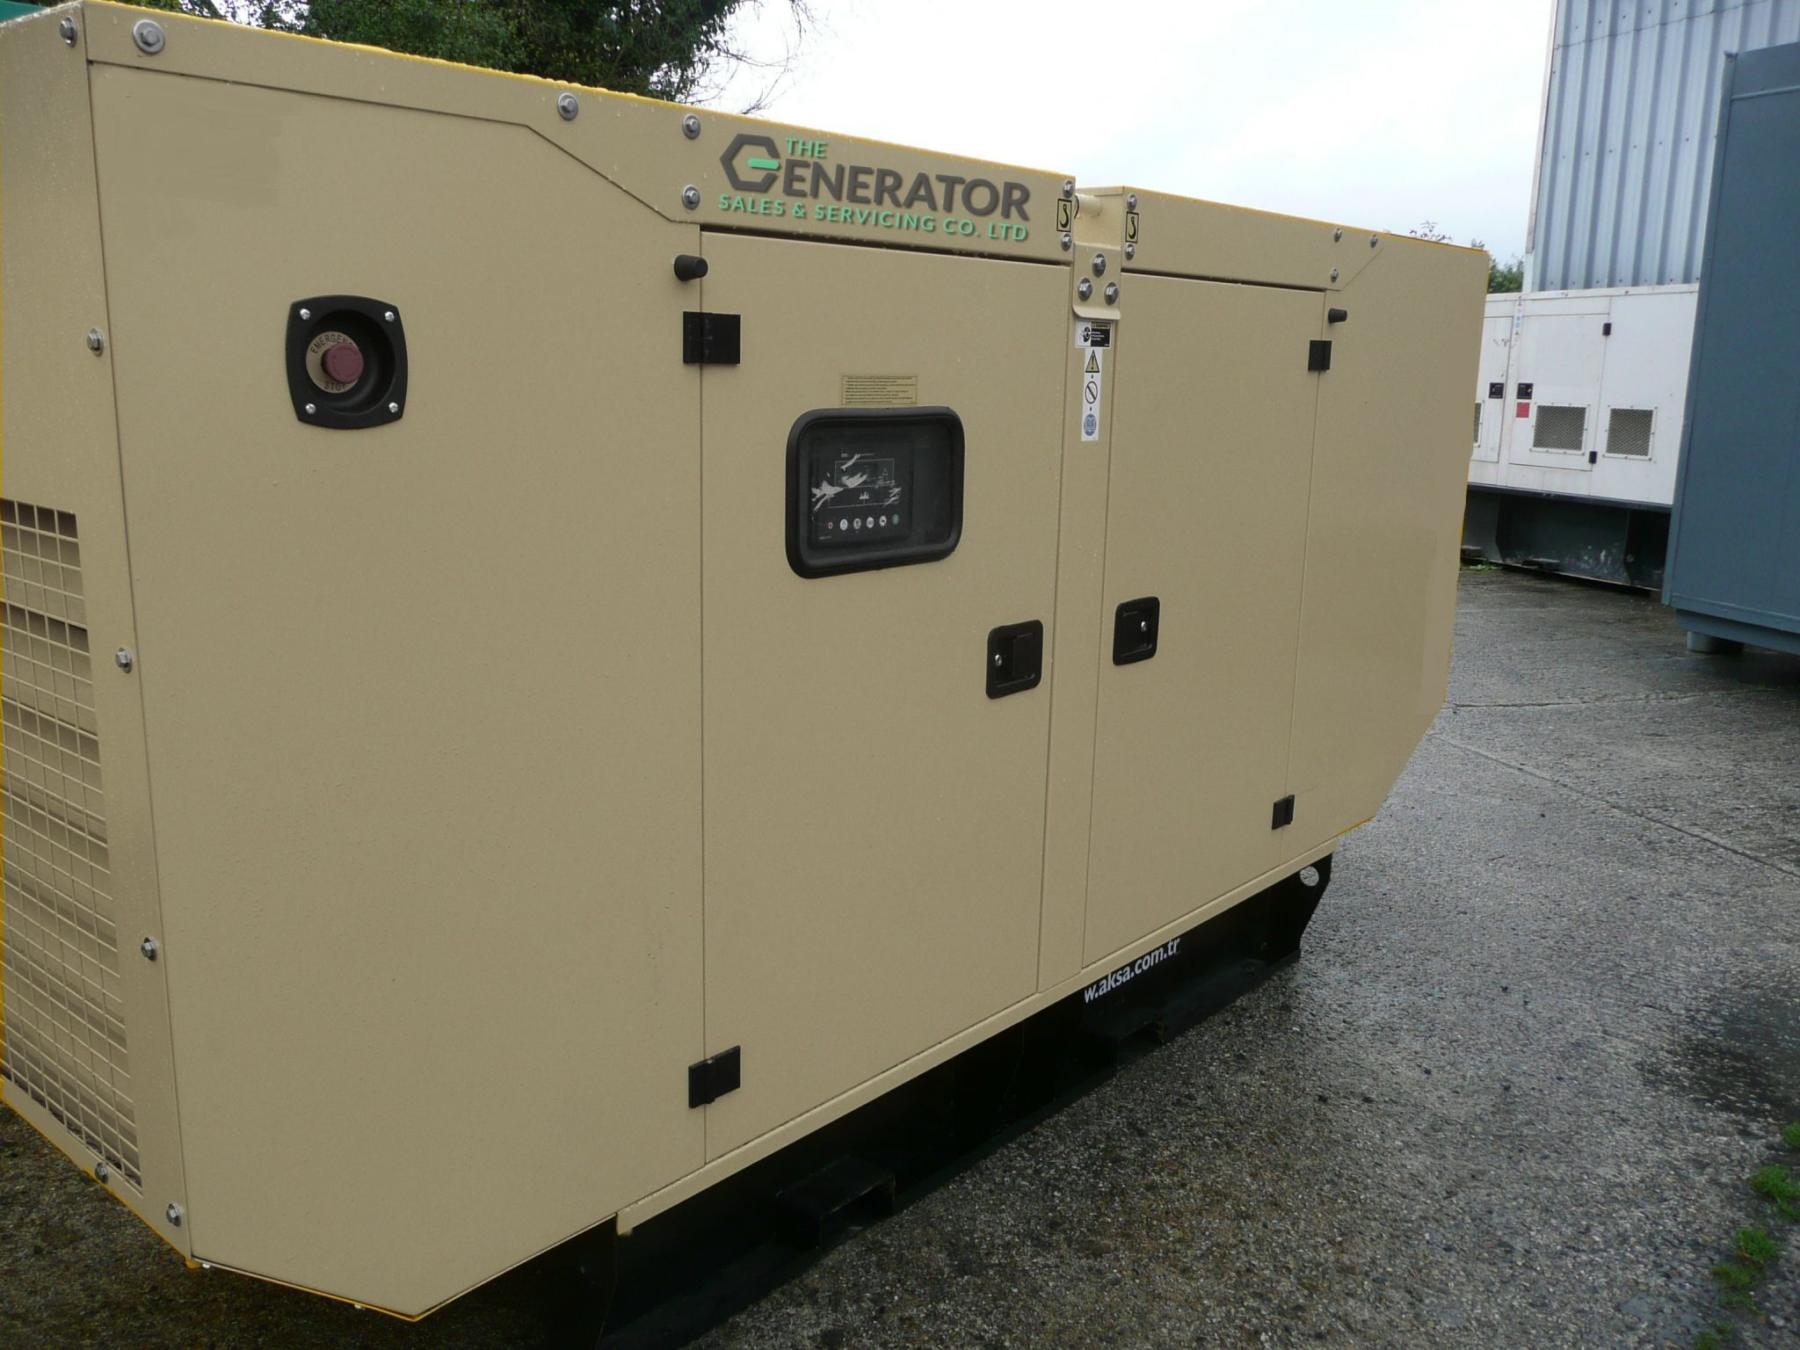 200 kva generator for sale in the UK Generator Sales & Servicing Co